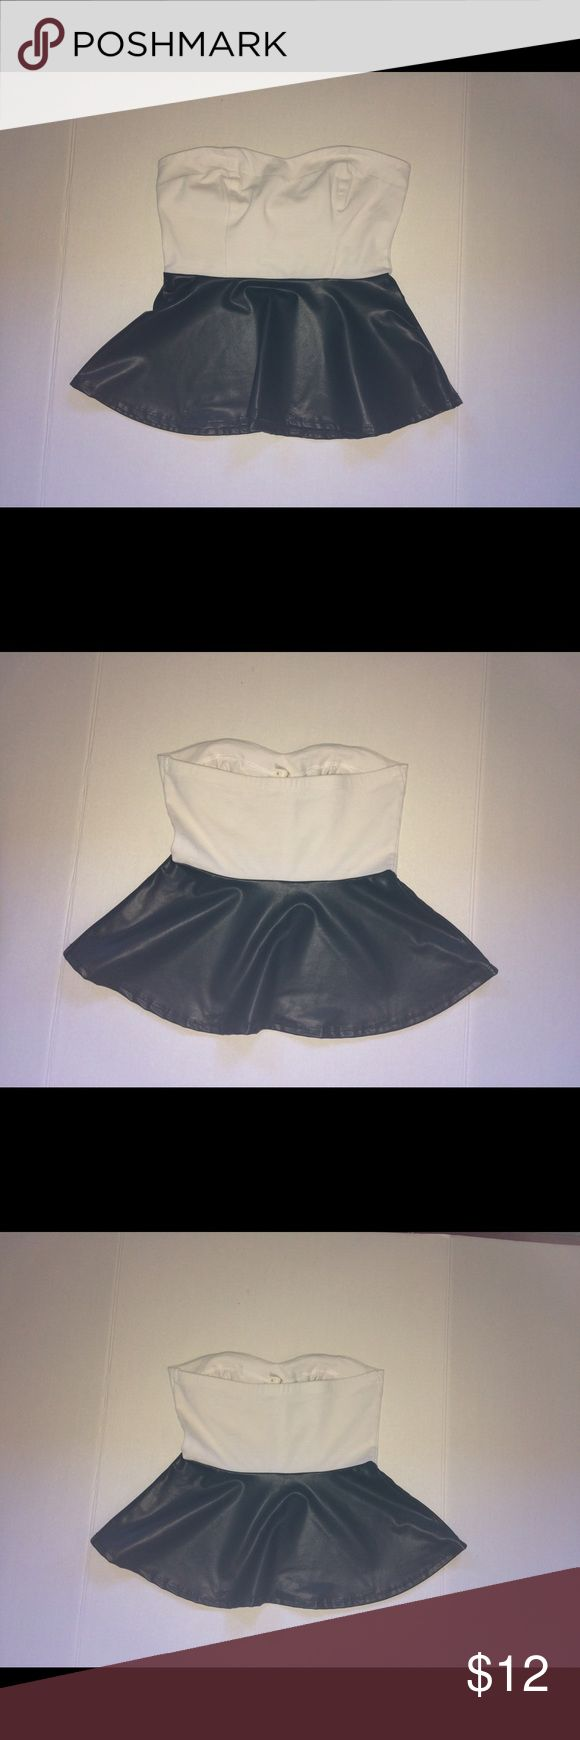 Kirra Faux leather peplum top- S Exquisite tube top/peplum top!!  The colors are cream/off-white on top, and black on the bottom. The top is fabric while the bottom is vegan leather. Kirra Tops Tunics